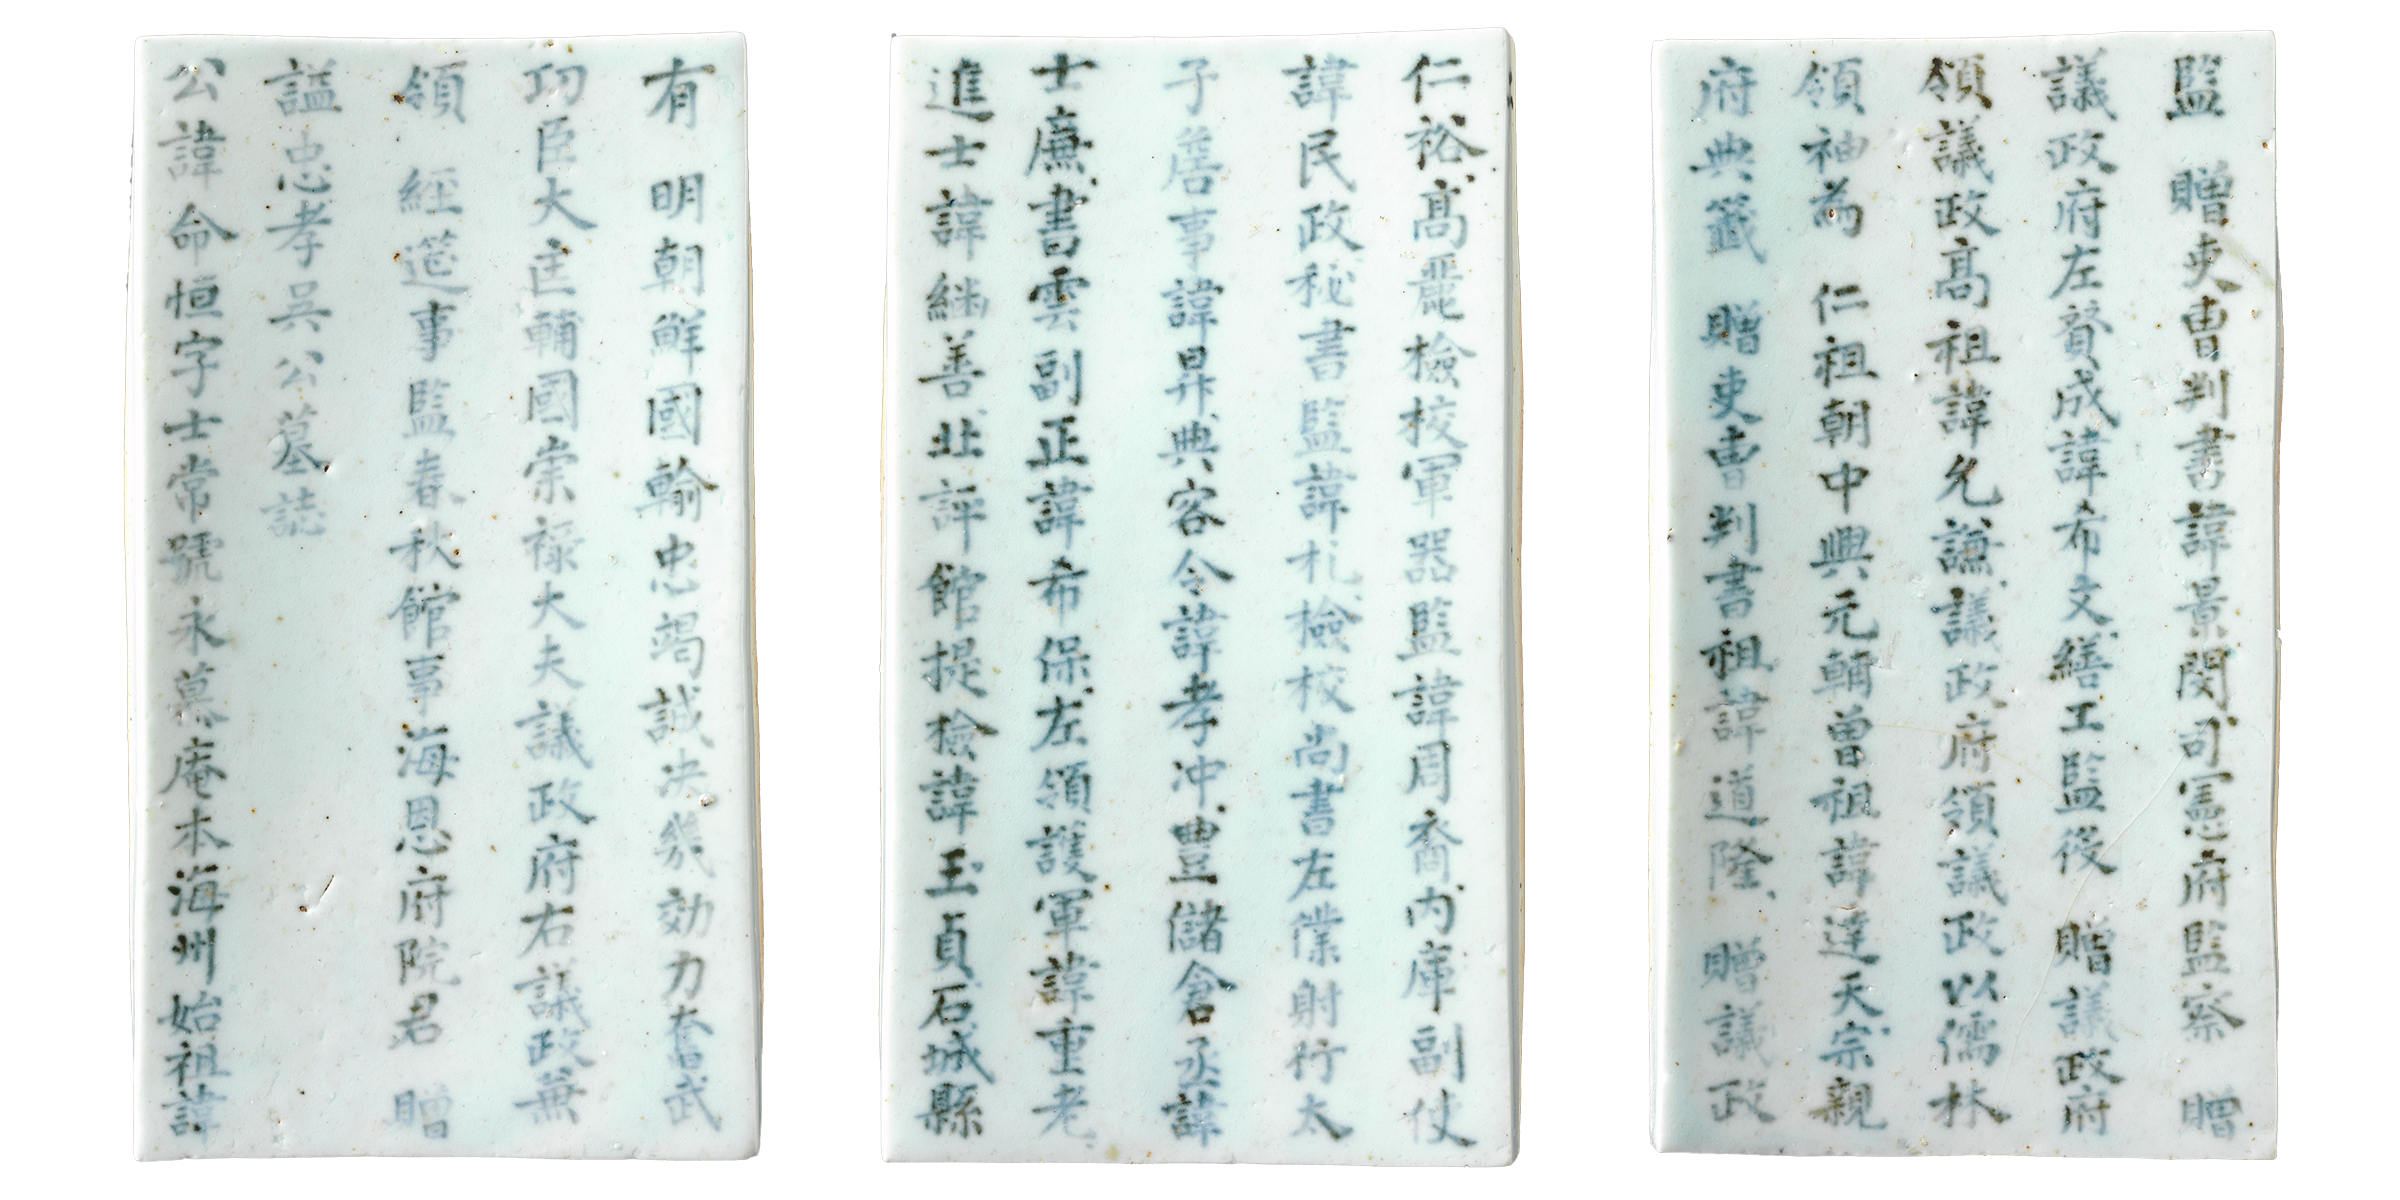 Myoji (epitaph tablets) commemorating the life of the calligrapher and statesman O Myeong-hang, Korea, 1736. The Metropolitan Museum of Art.